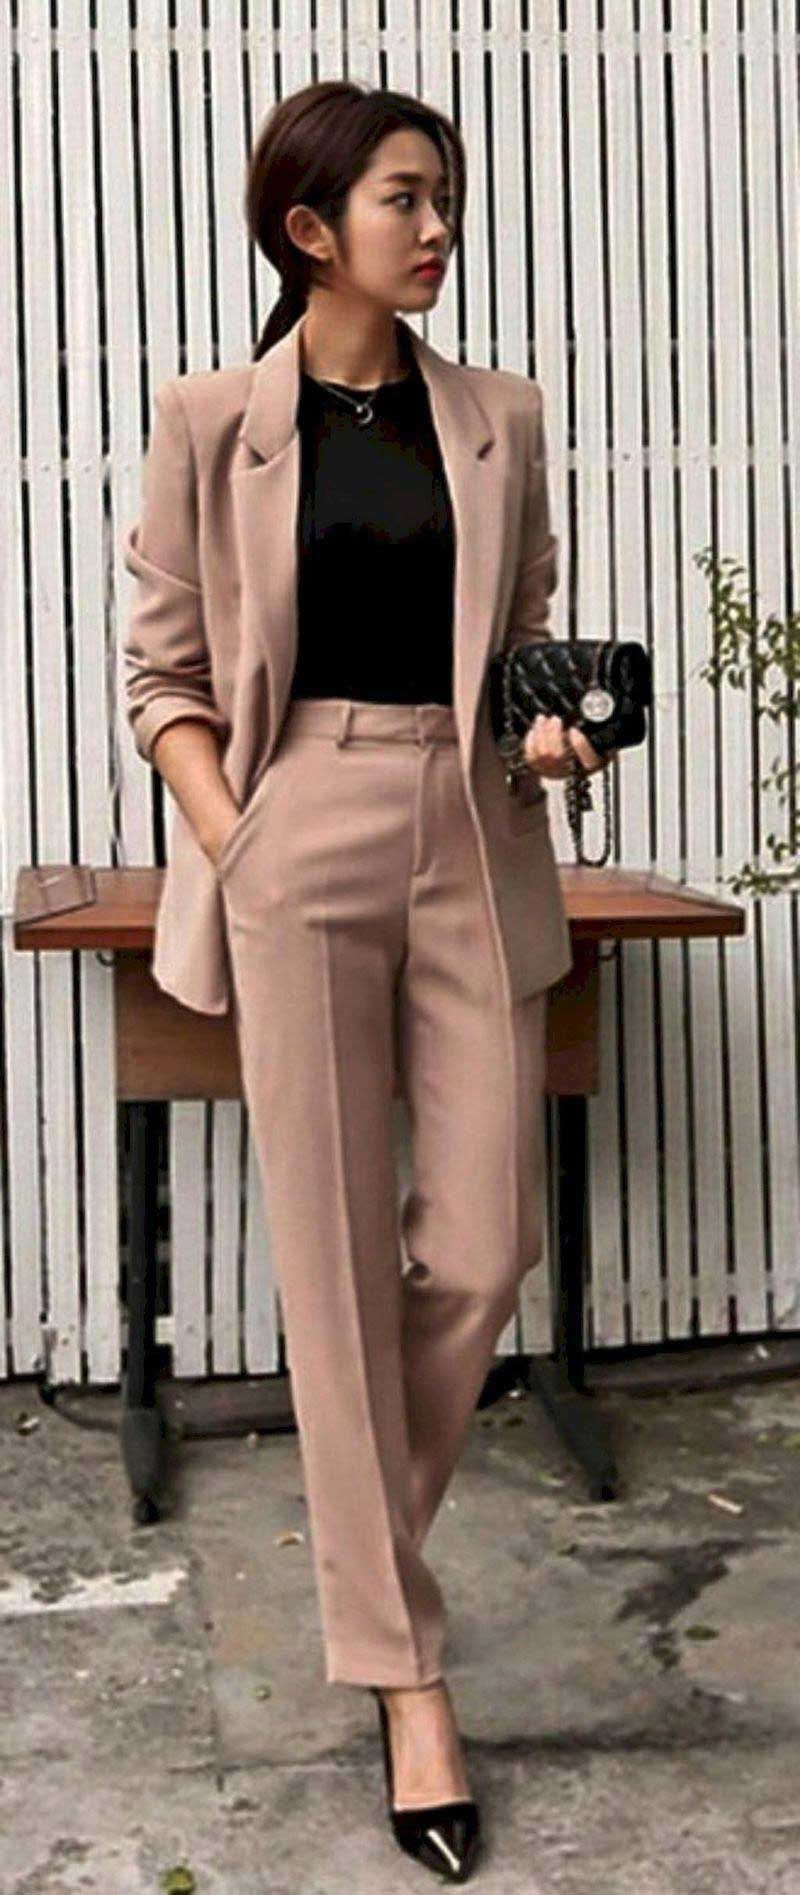 30 Professional Business Attire for Young Women 35 – Business outfits